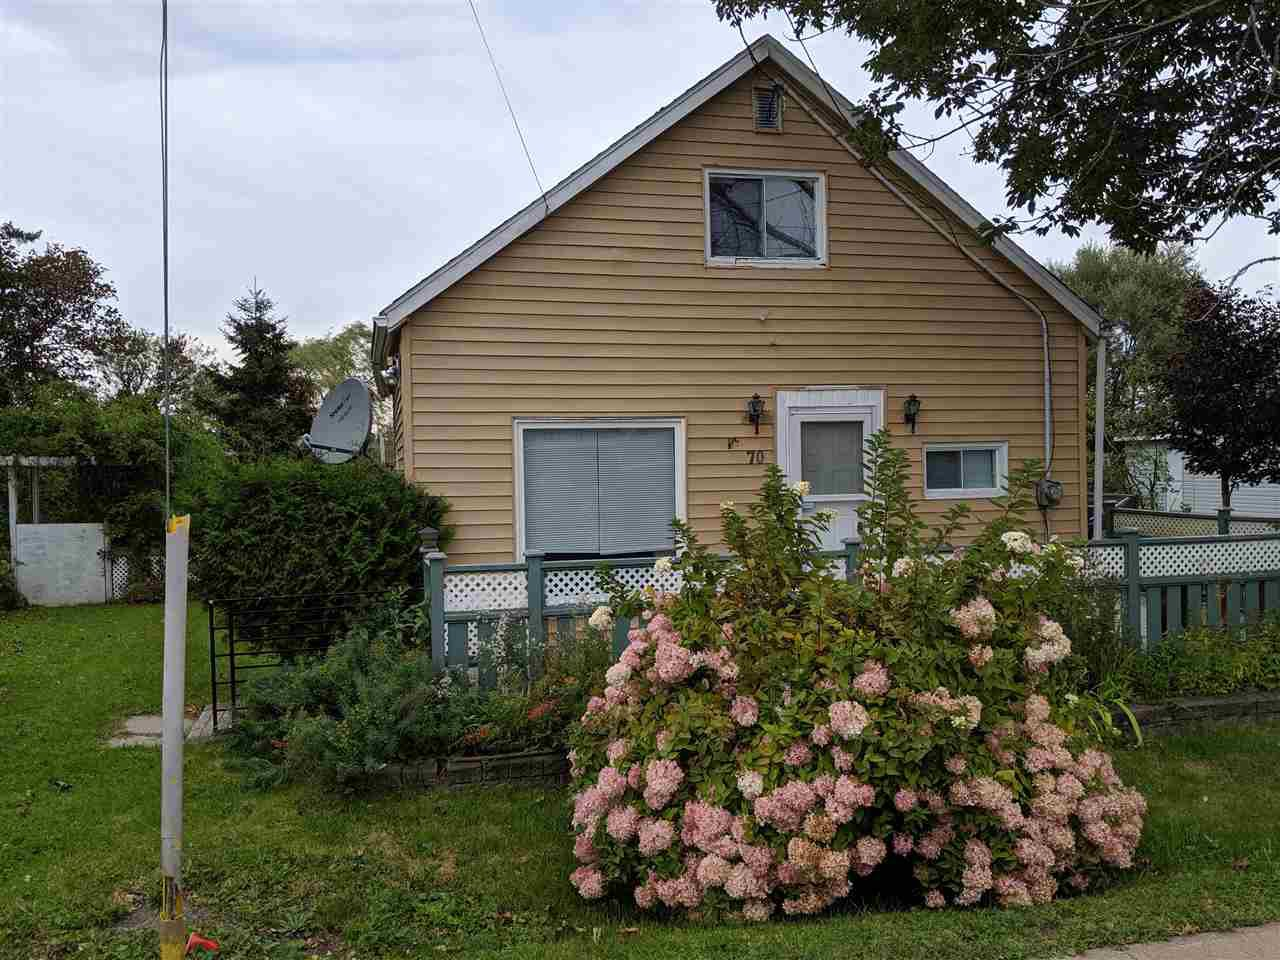 Main Photo: 70 Bridge Avenue in Stellarton: 106-New Glasgow, Stellarton Residential for sale (Northern Region)  : MLS®# 202001087